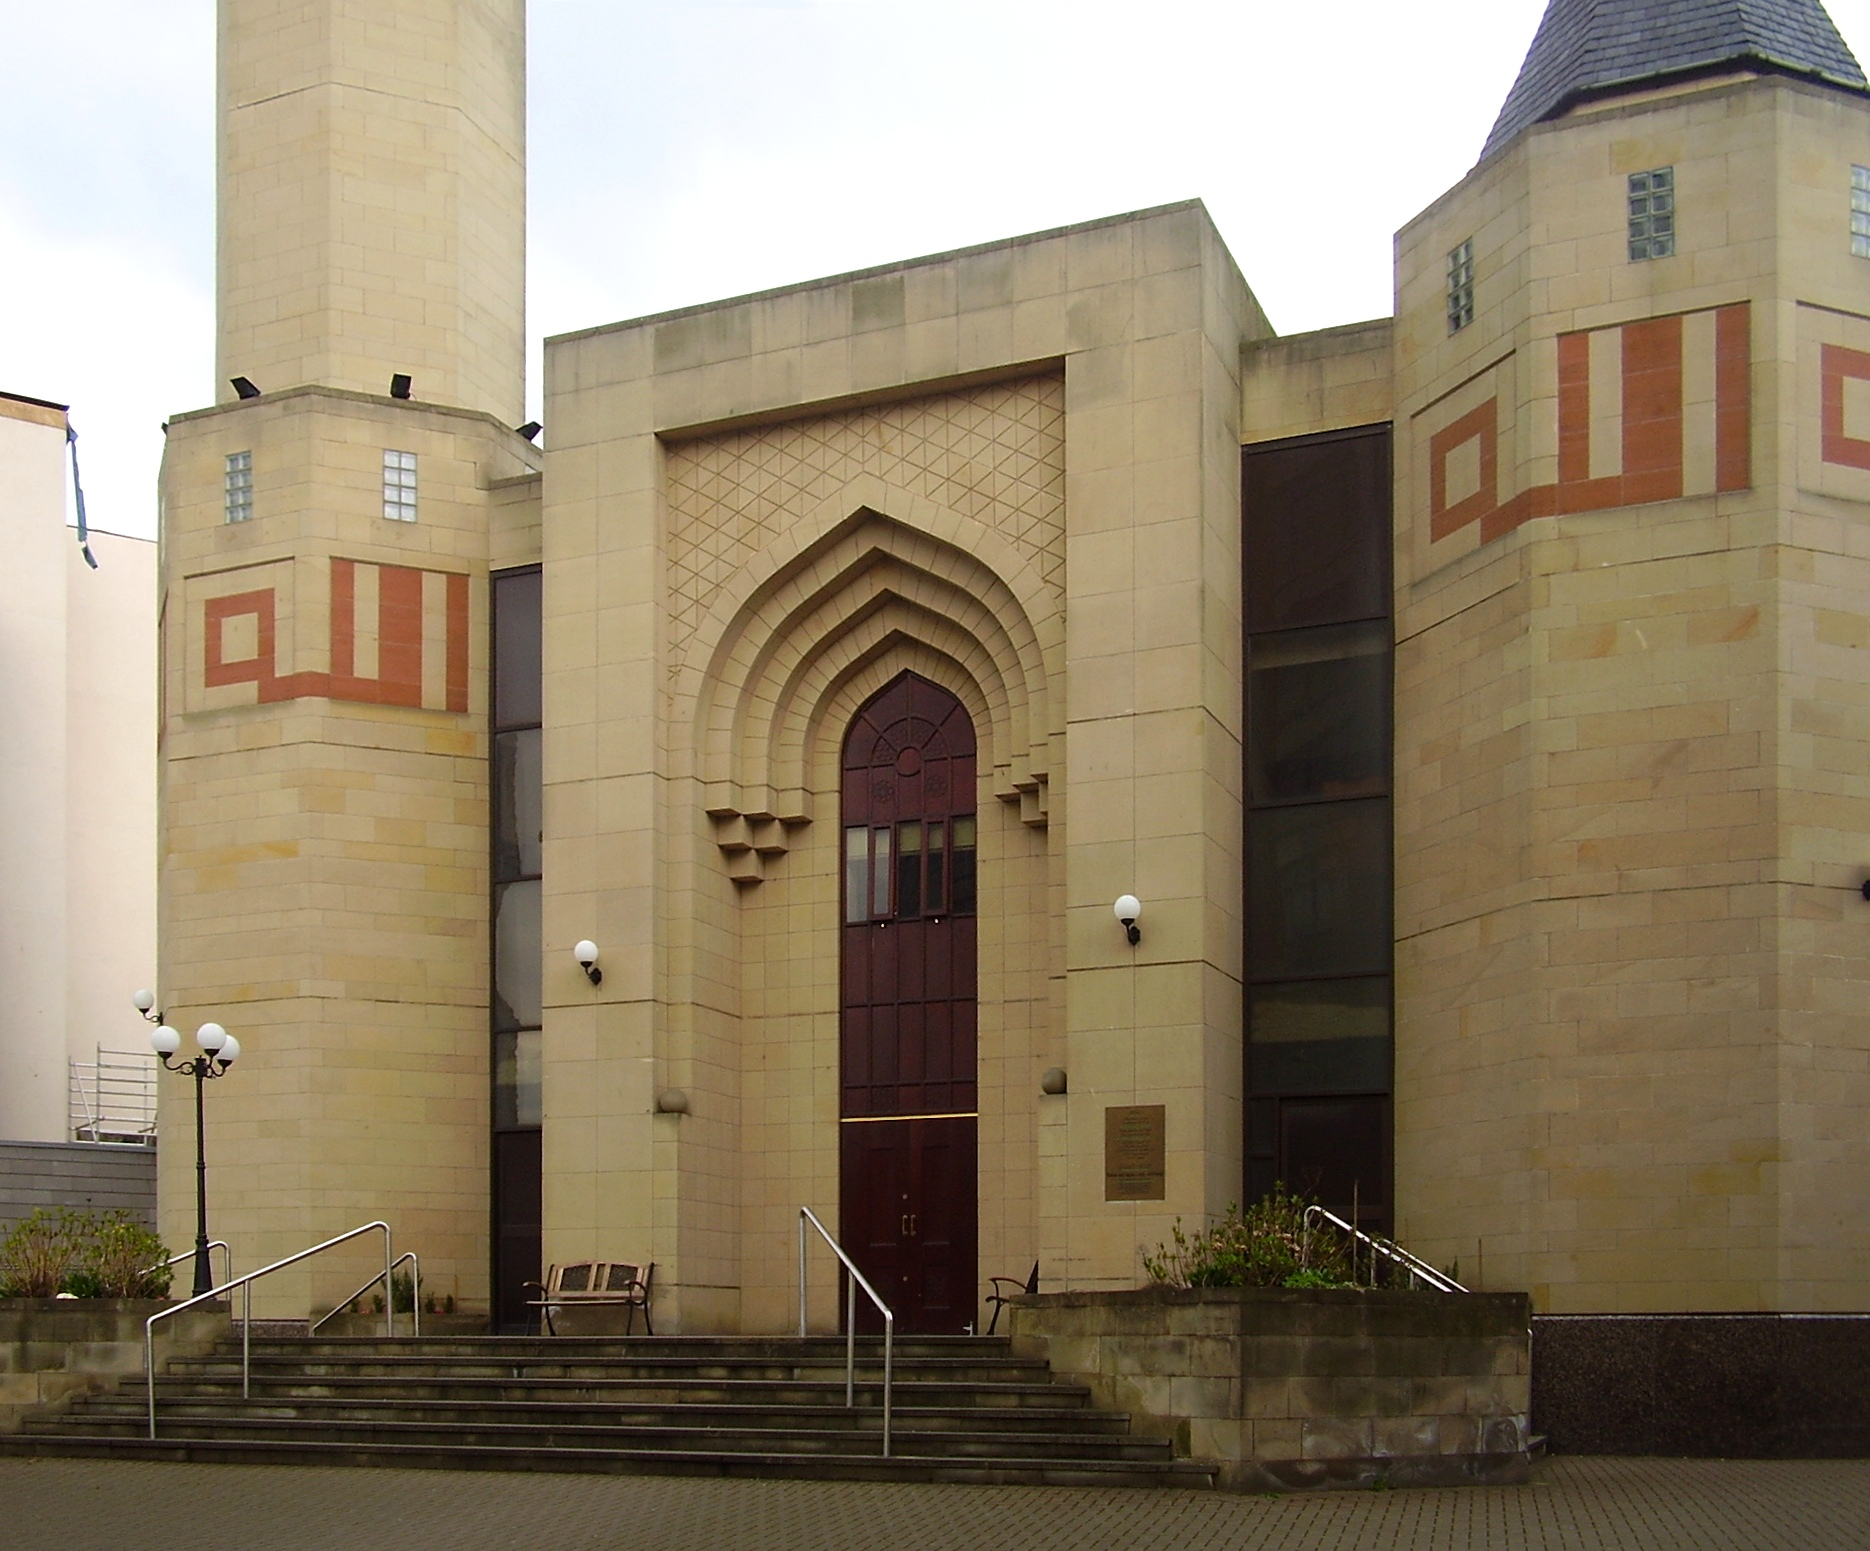 https://i0.wp.com/upload.wikimedia.org/wikipedia/commons/f/f7/Edinburgh_central_mosque_edit.jpg